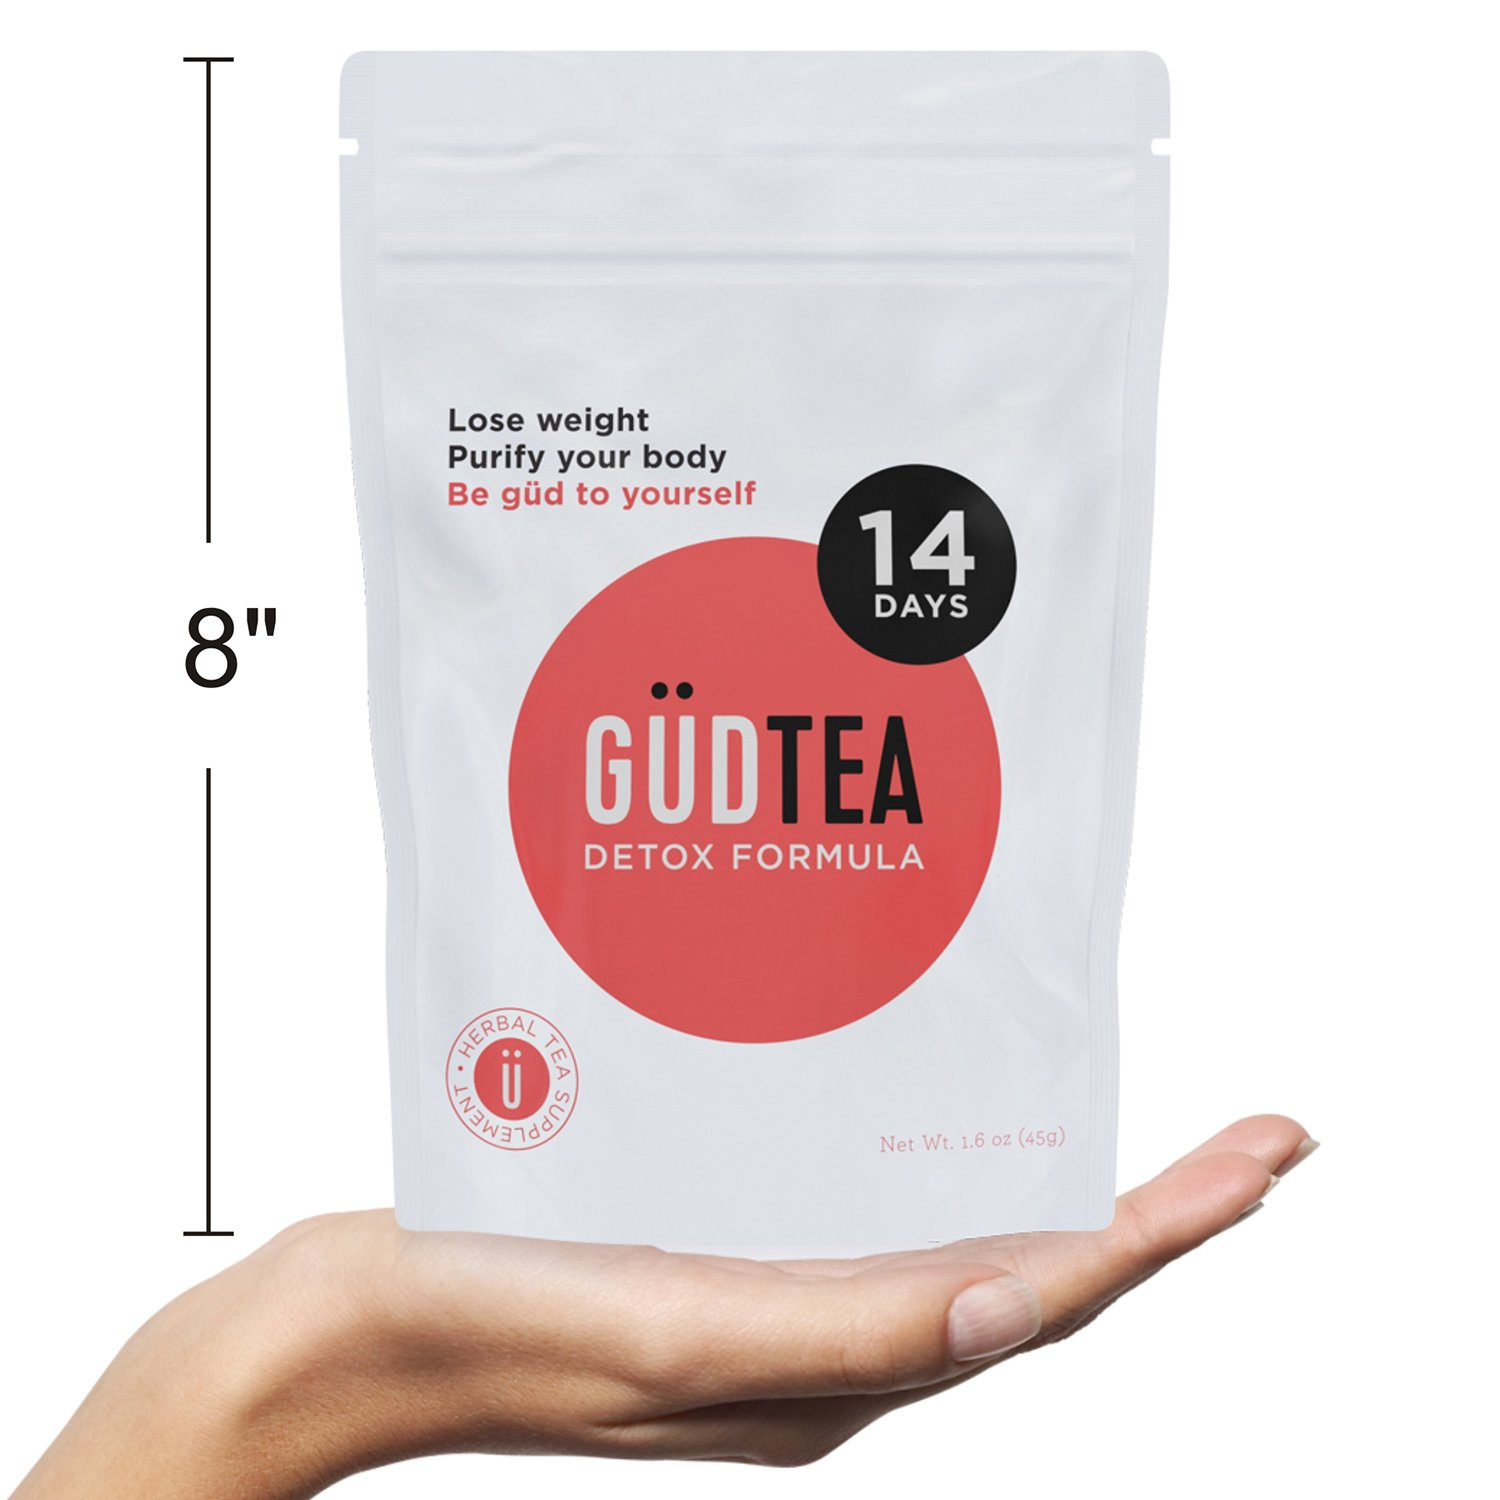 GUDTEA Weight Loss Tea: Appetite Suppressant, 14 Day Detox and Cleanse,  Reduce Bloating, Stimulate